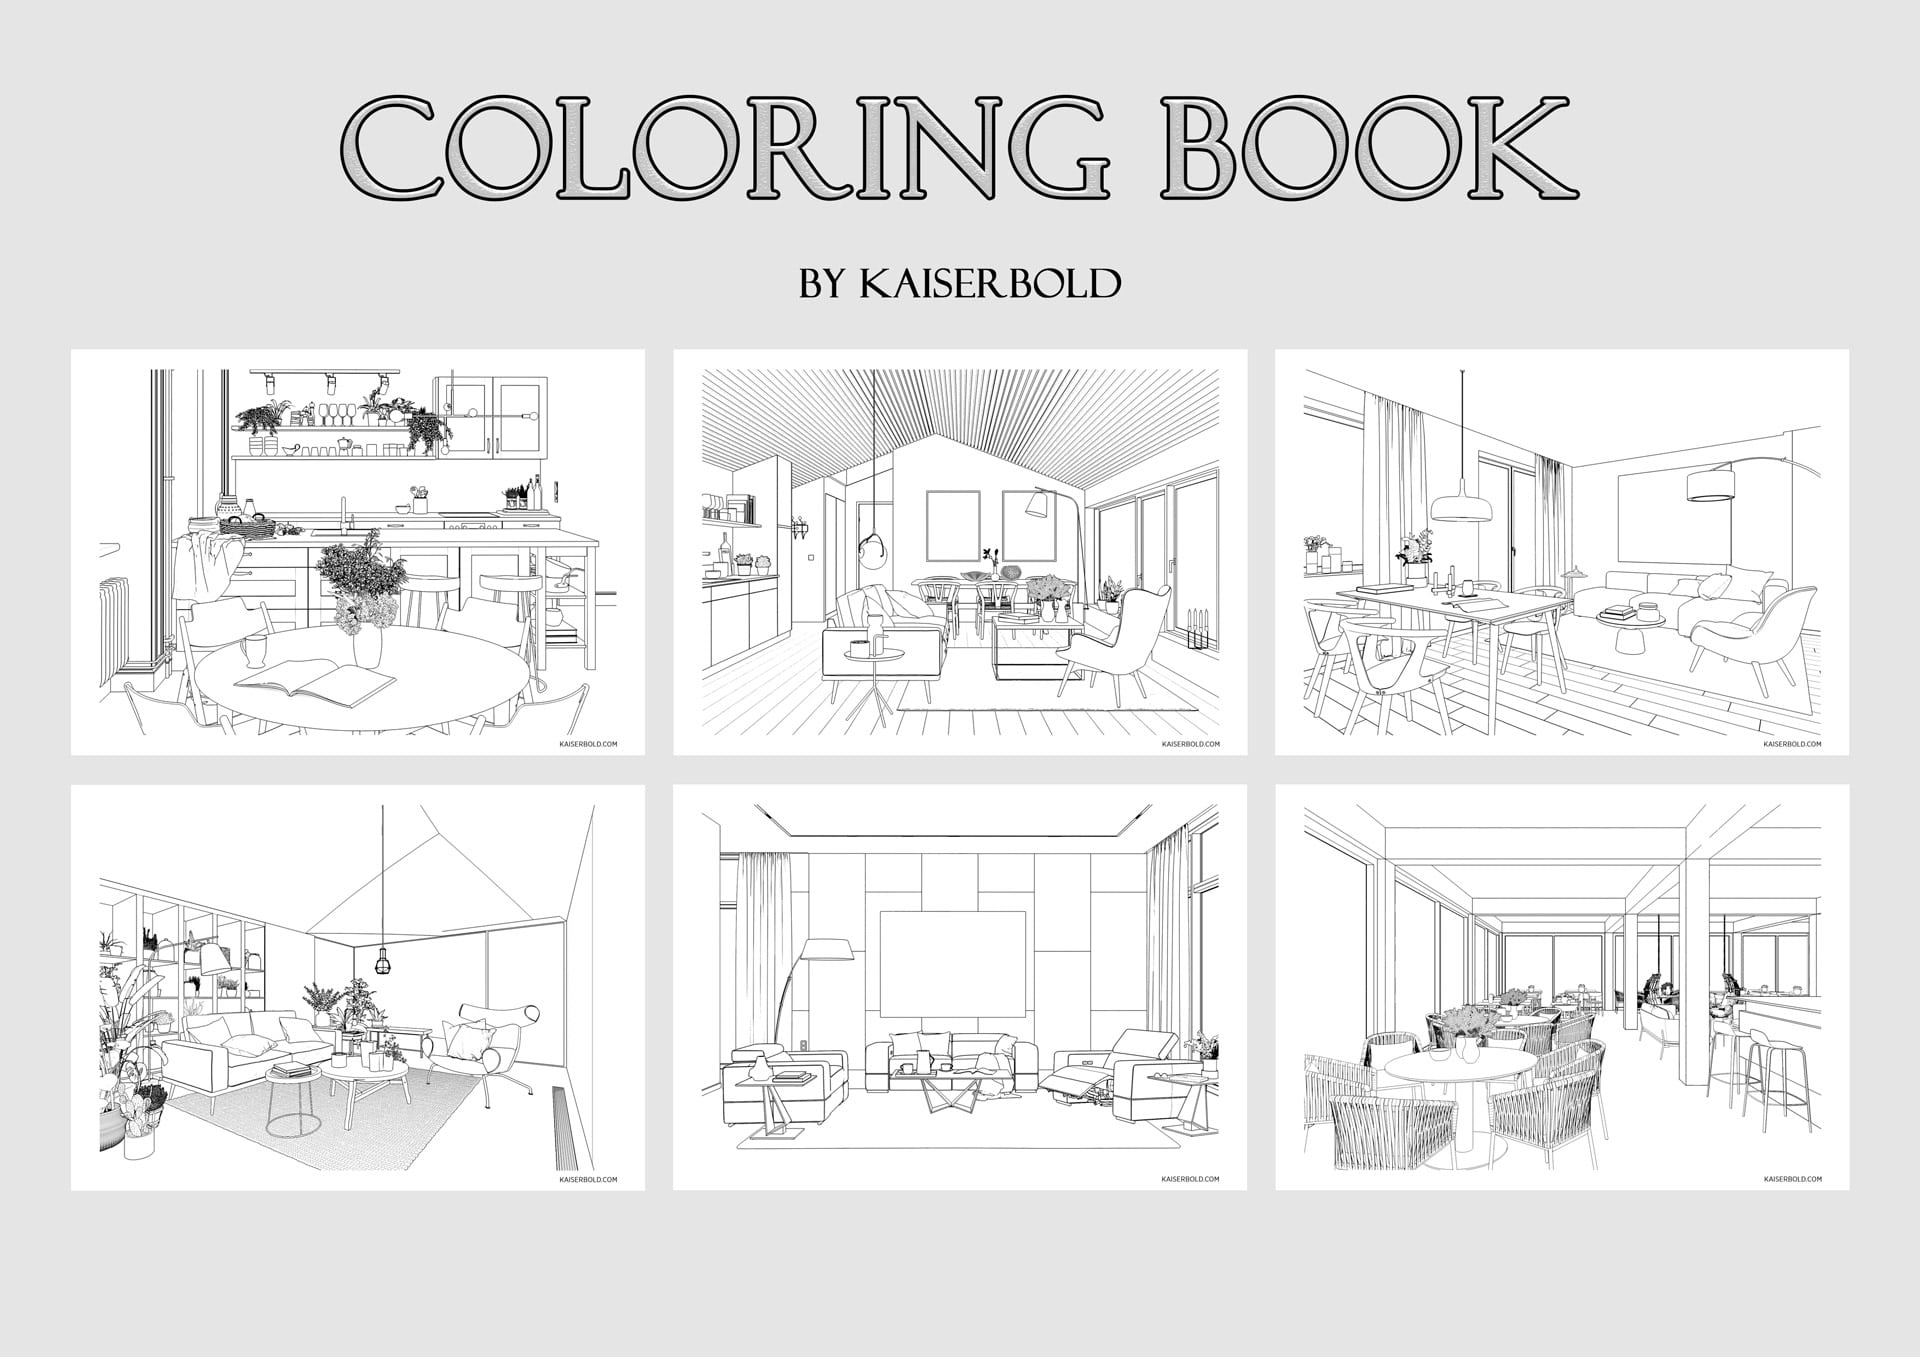 kaiserbold-coloring-book-interiors-preview-wire-1920px